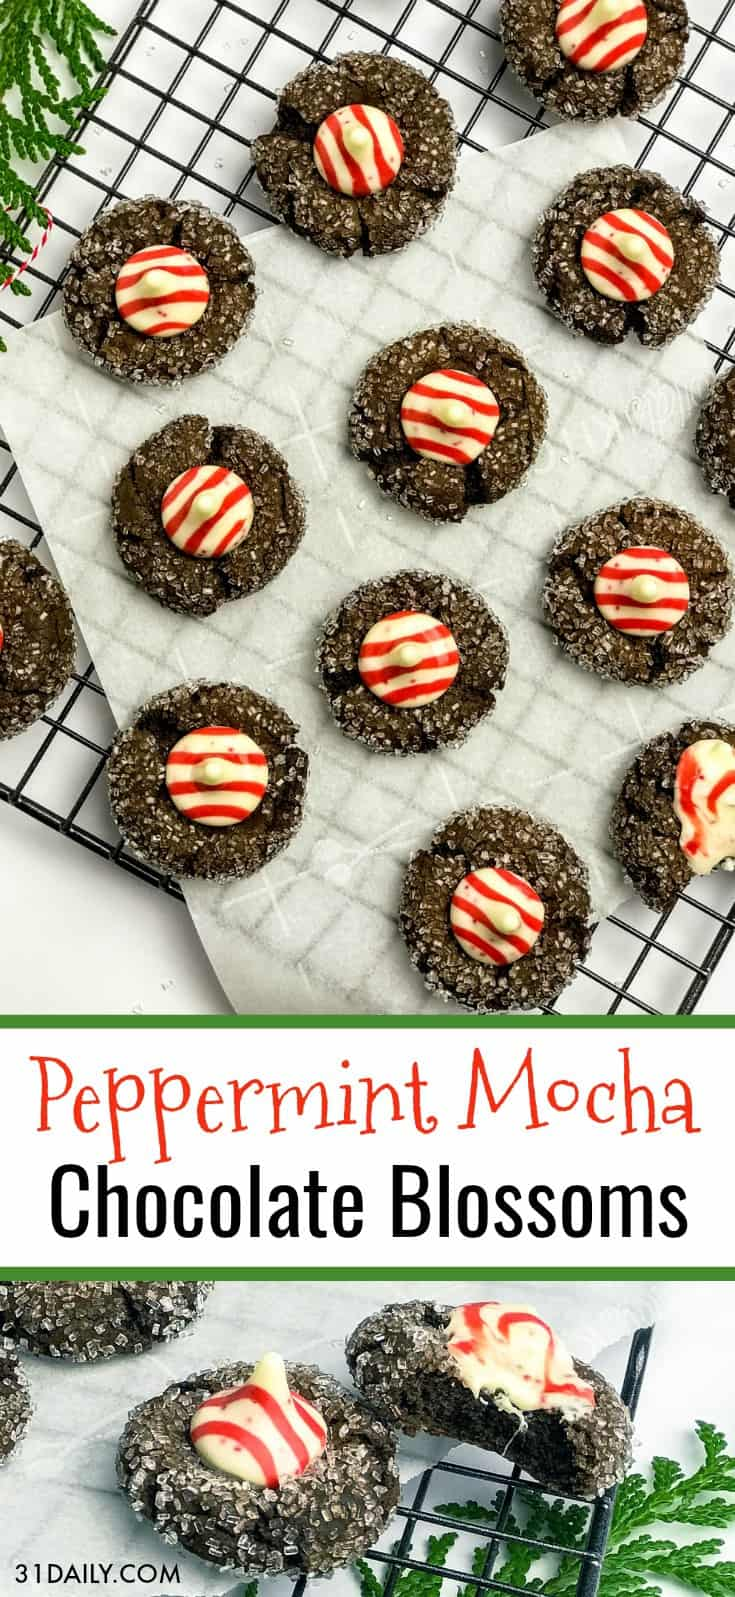 Peppermint Mocha Chocolate Blossom Cookies | 31Daily.com